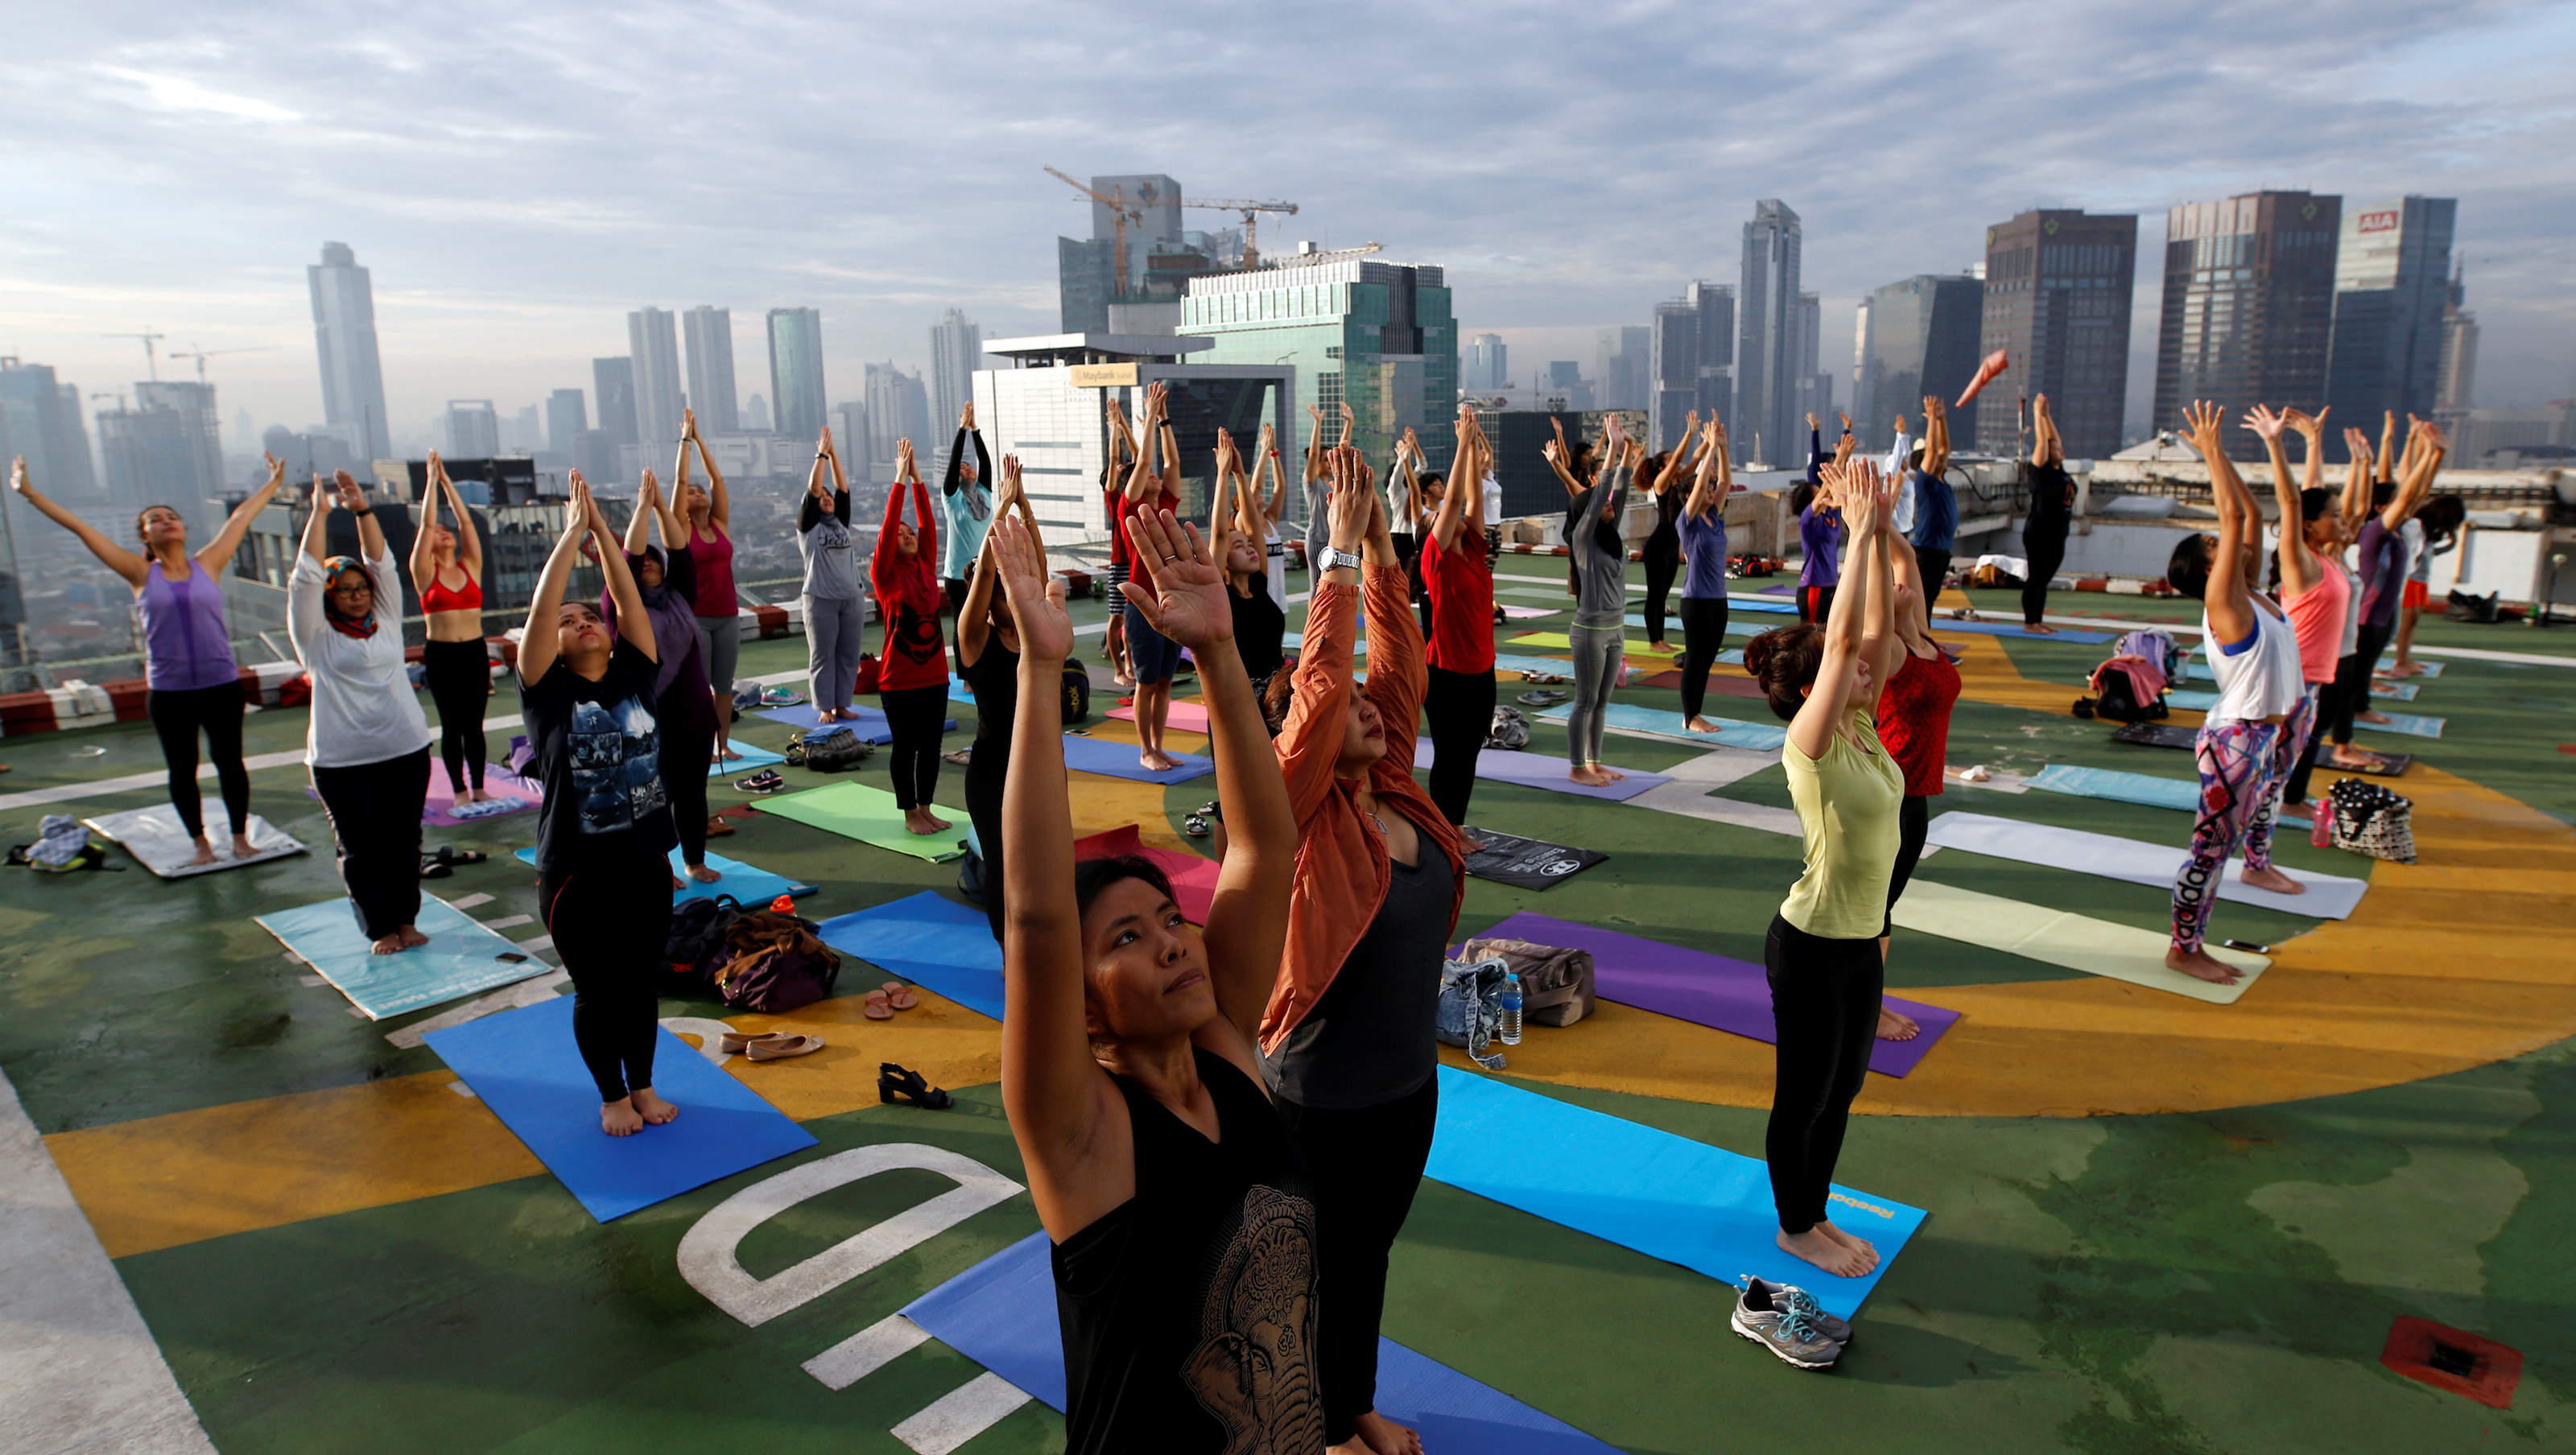 People take part in a sunrise yoga class on the helicopter landing pad on the roof of the Grand Sahid Jaya hotel in Jakarta, Indonesia September 25, 2016.REUTERS/Darren Whiteside - RTSPAX1